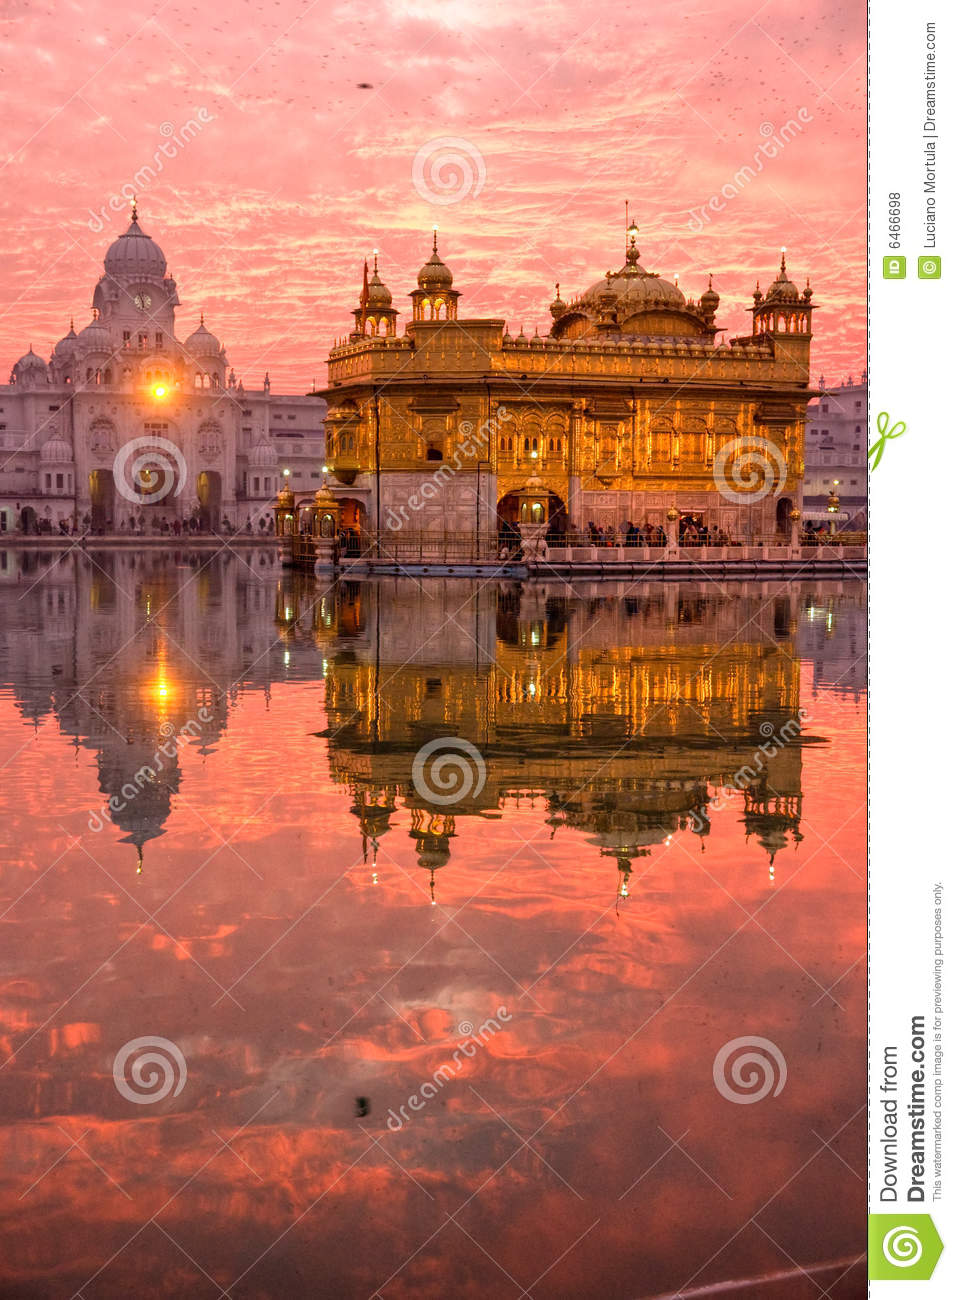 Golden Temple at sunset, Amritsar,